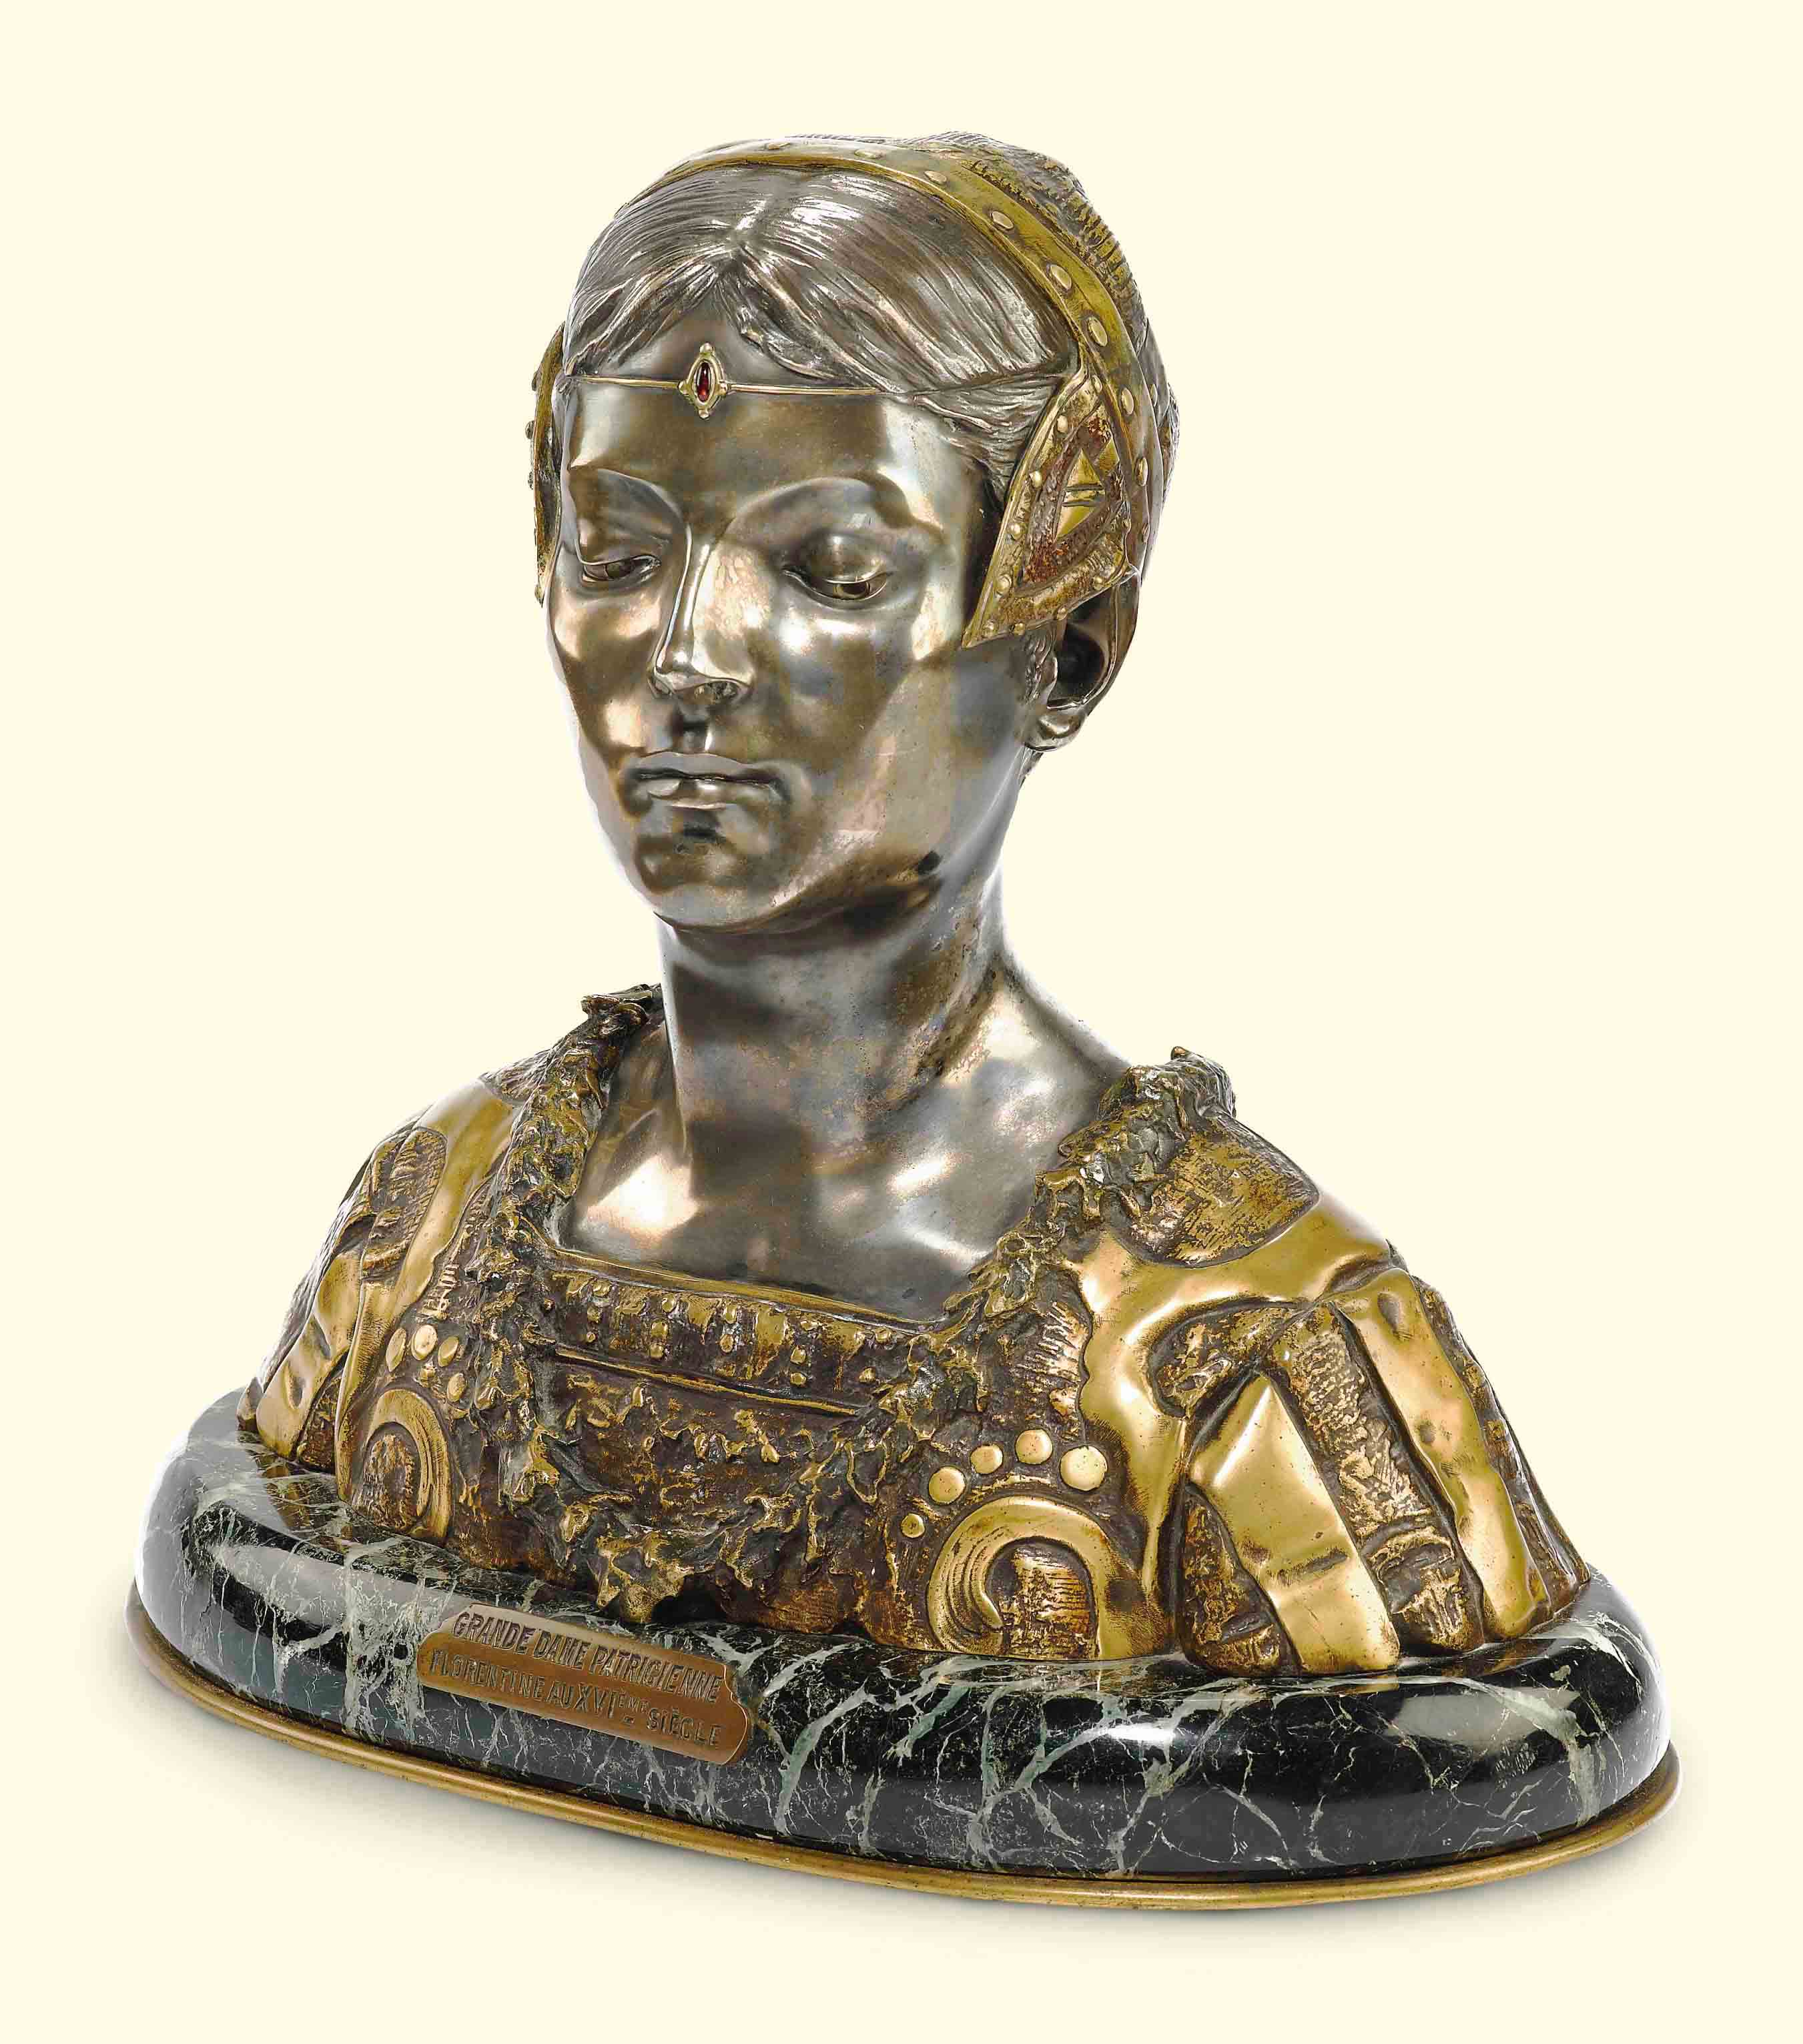 A FRENCH SILVERED, GILT AND POLYCHROME-PATINATED BRONZE BUST ENTITLED 'GRANDE DAME PATRICIENNE FLORENTINE AU XVIEME SIECLE'